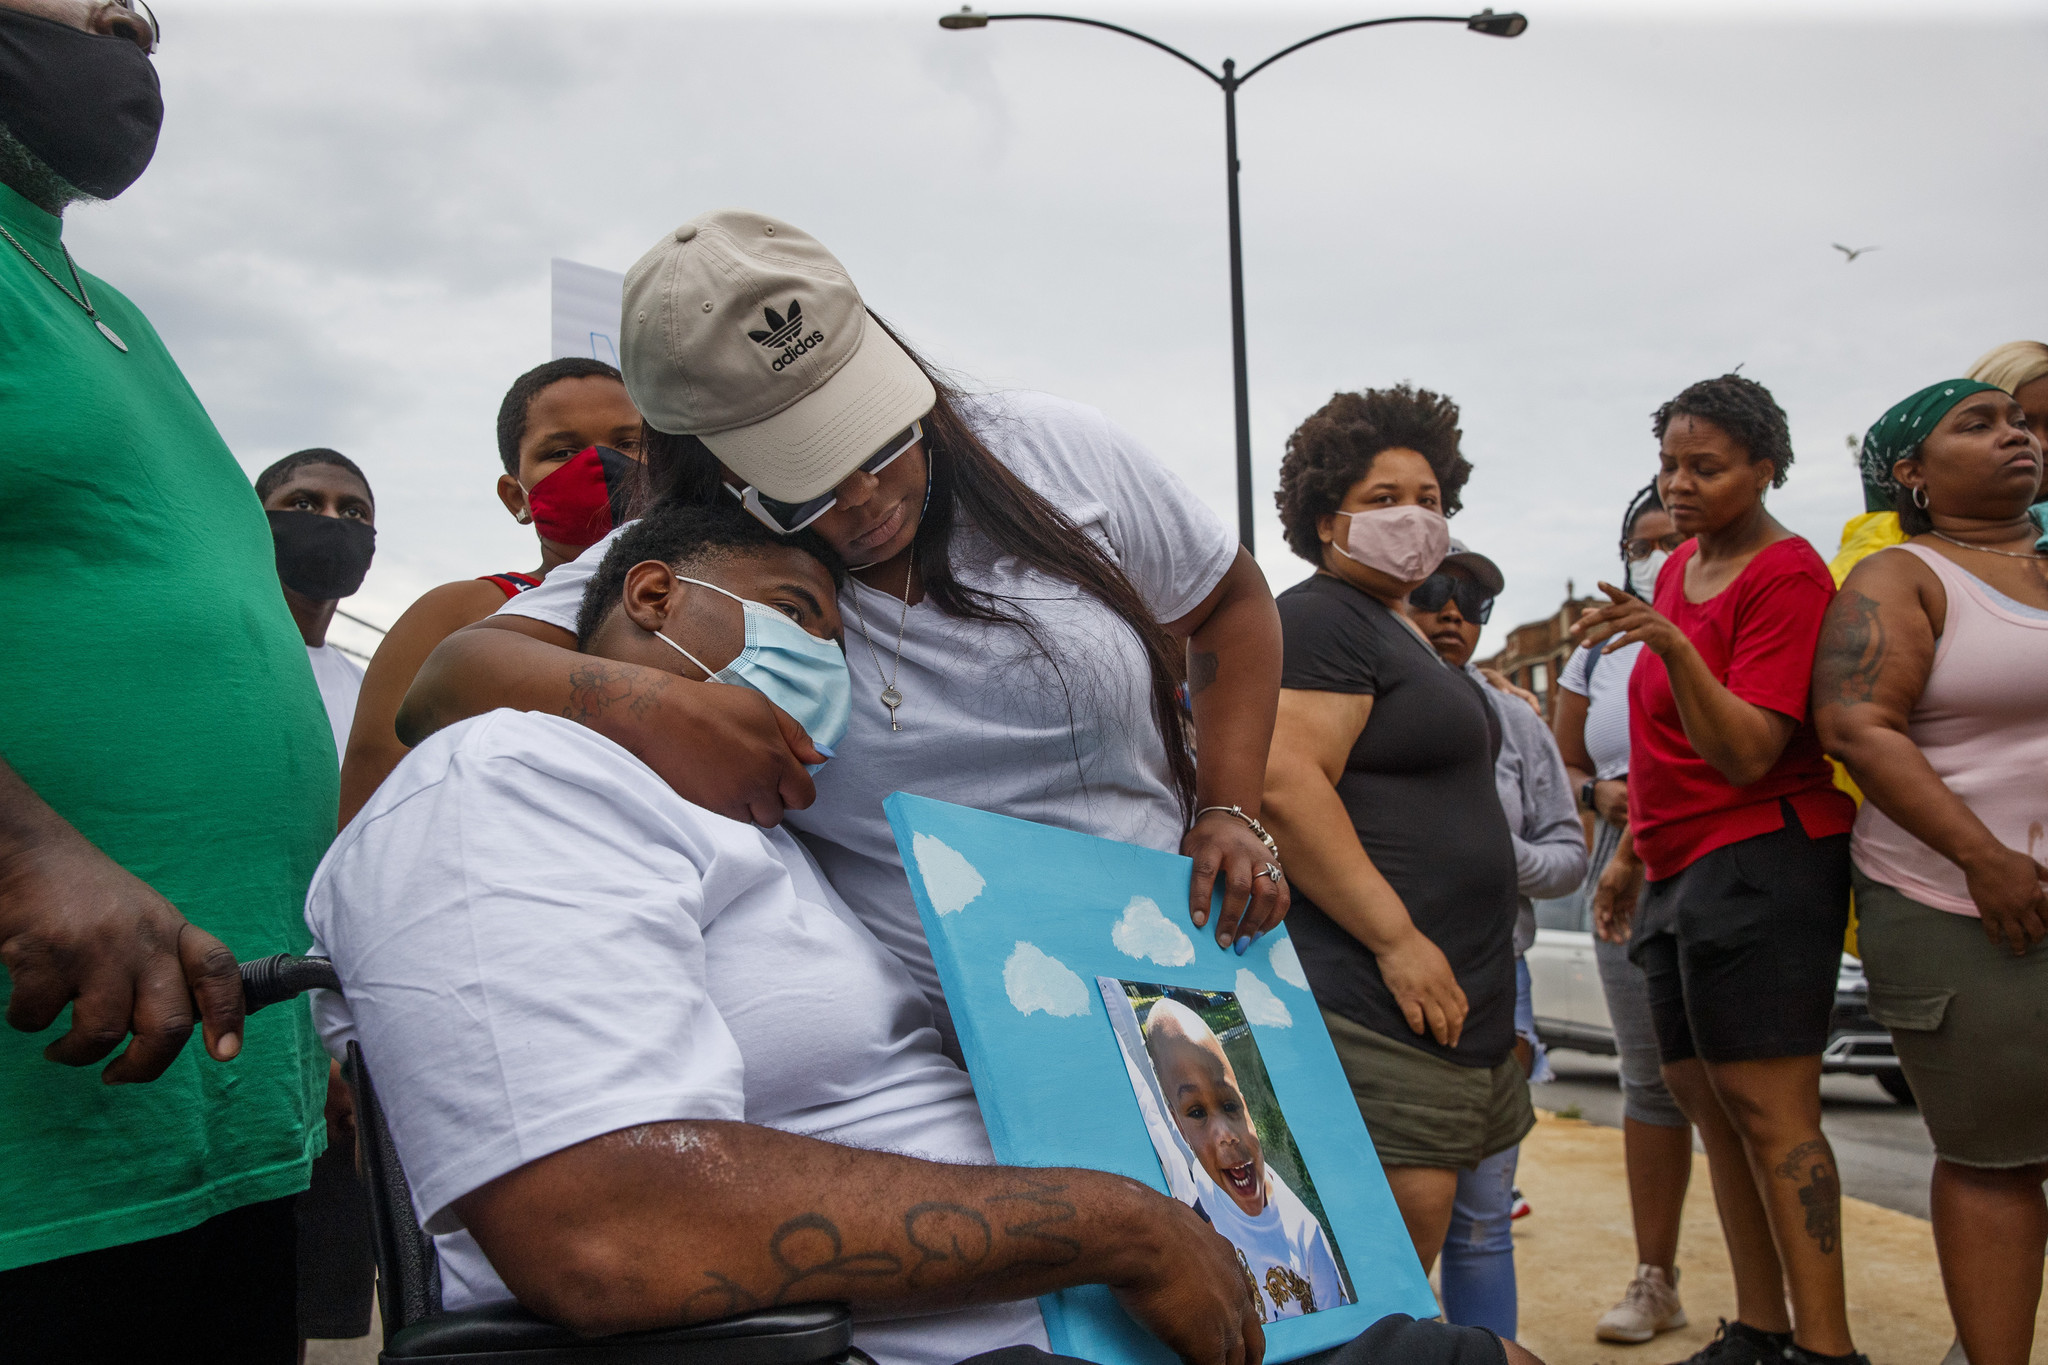 Neighbors Outraged As Toddler 3 Teens Killed In Weekend Violence This Is A Horrific Father S Day This 3 Year Old Baby Lost His Life Chicago Tribune